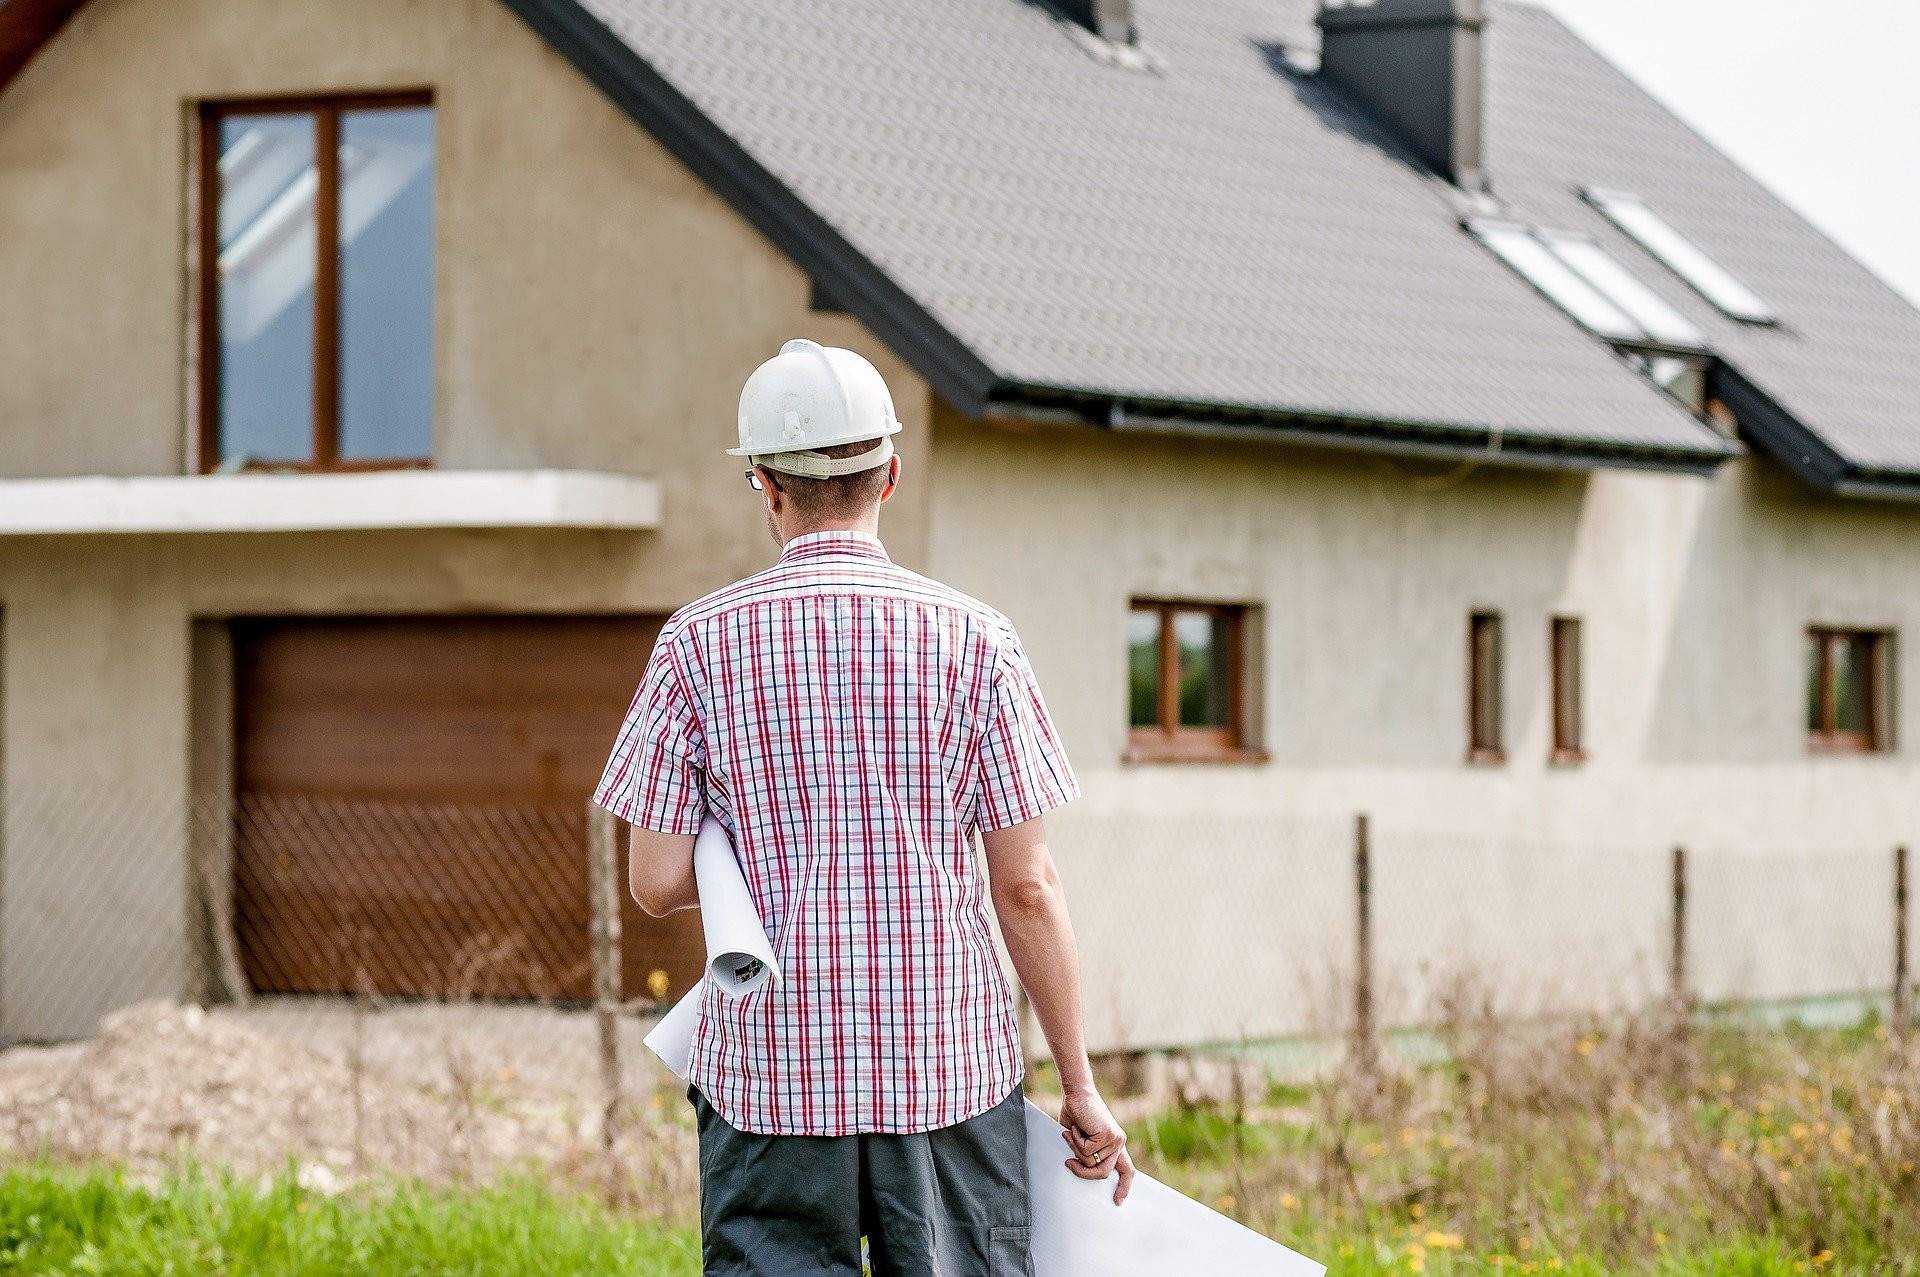 Pre-Market Home Inspections Give Sellers Peace of Mind